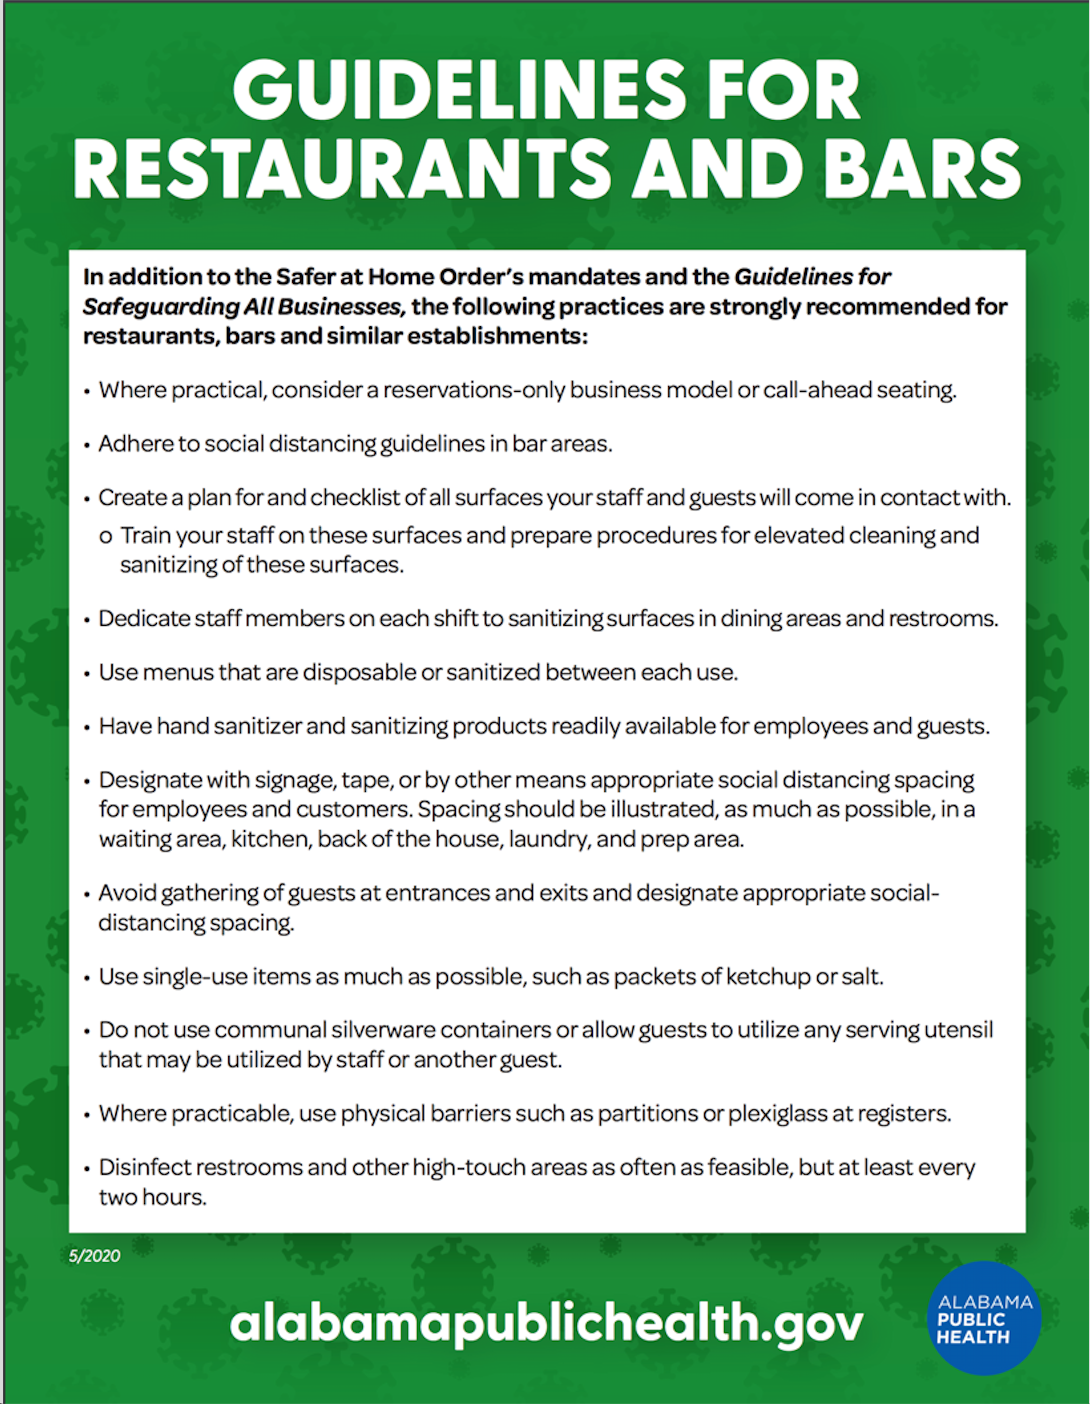 Guidelines for restaurants and bars